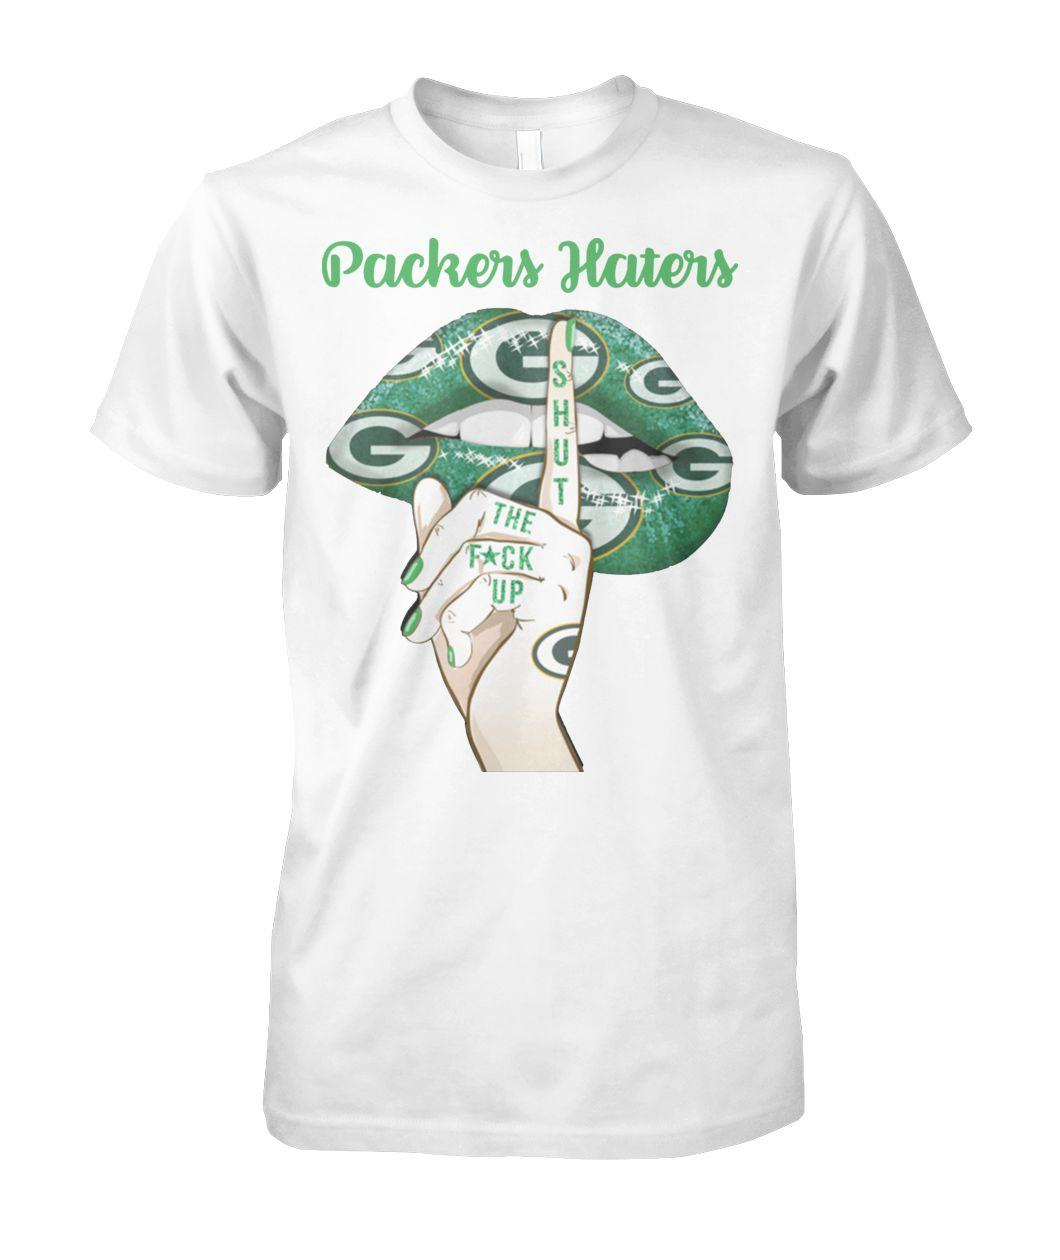 Green bay packers lips packers haters shut the fuck up unisex cotton tee